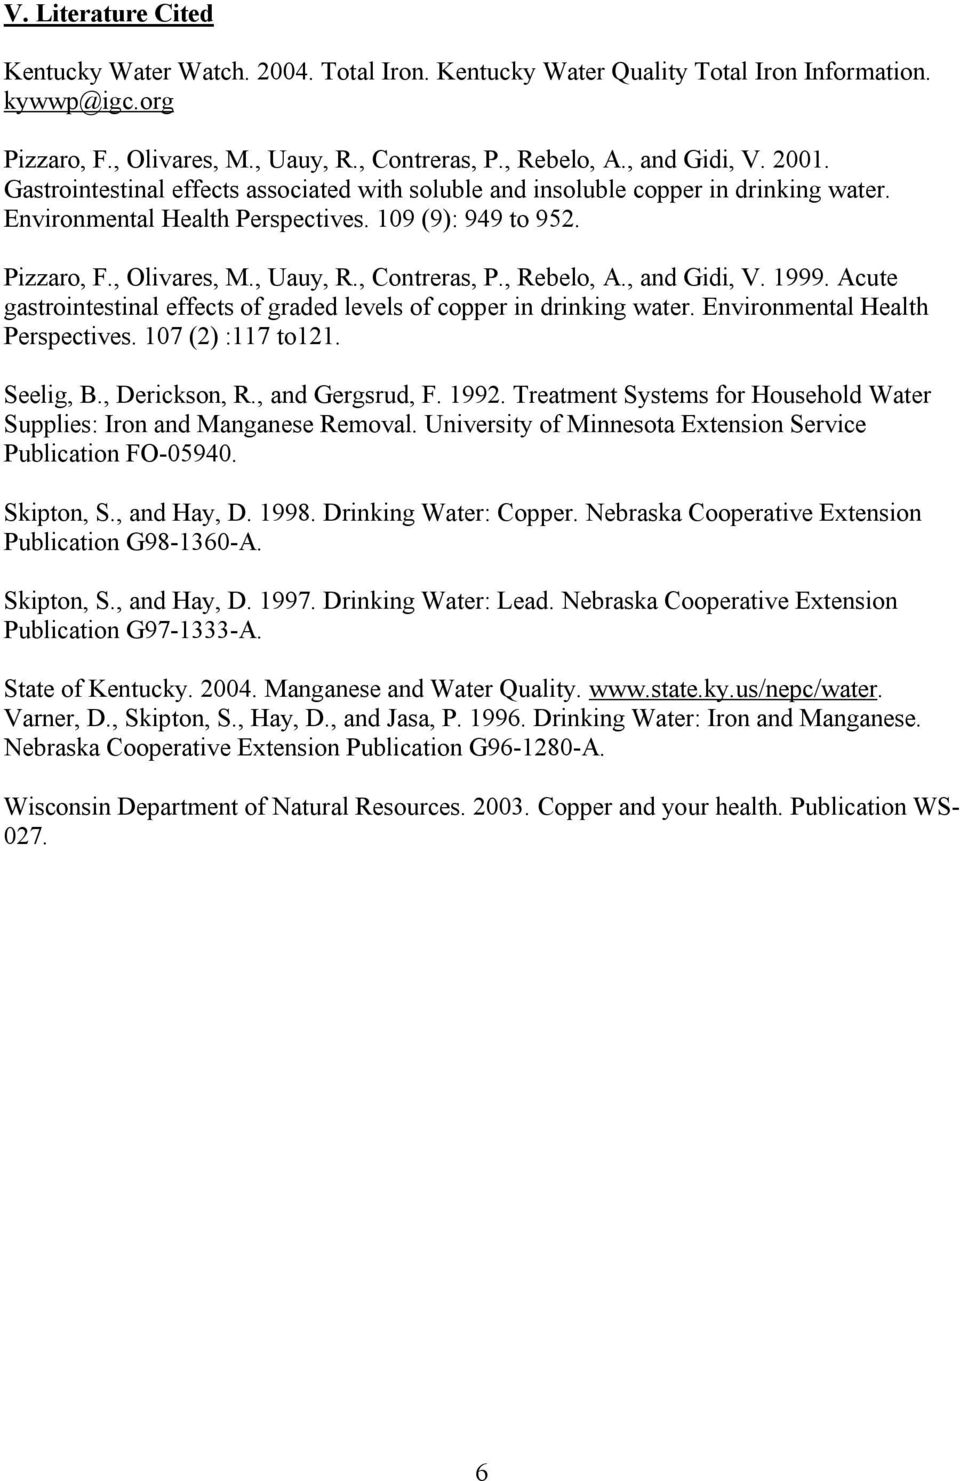 , Contreras, P., Rebelo, A., and Gidi, V. 1999. Acute gastrointestinal effects of graded levels of copper in drinking water. Environmental Health Perspectives. 107 (2) :117 to121. Seelig, B.